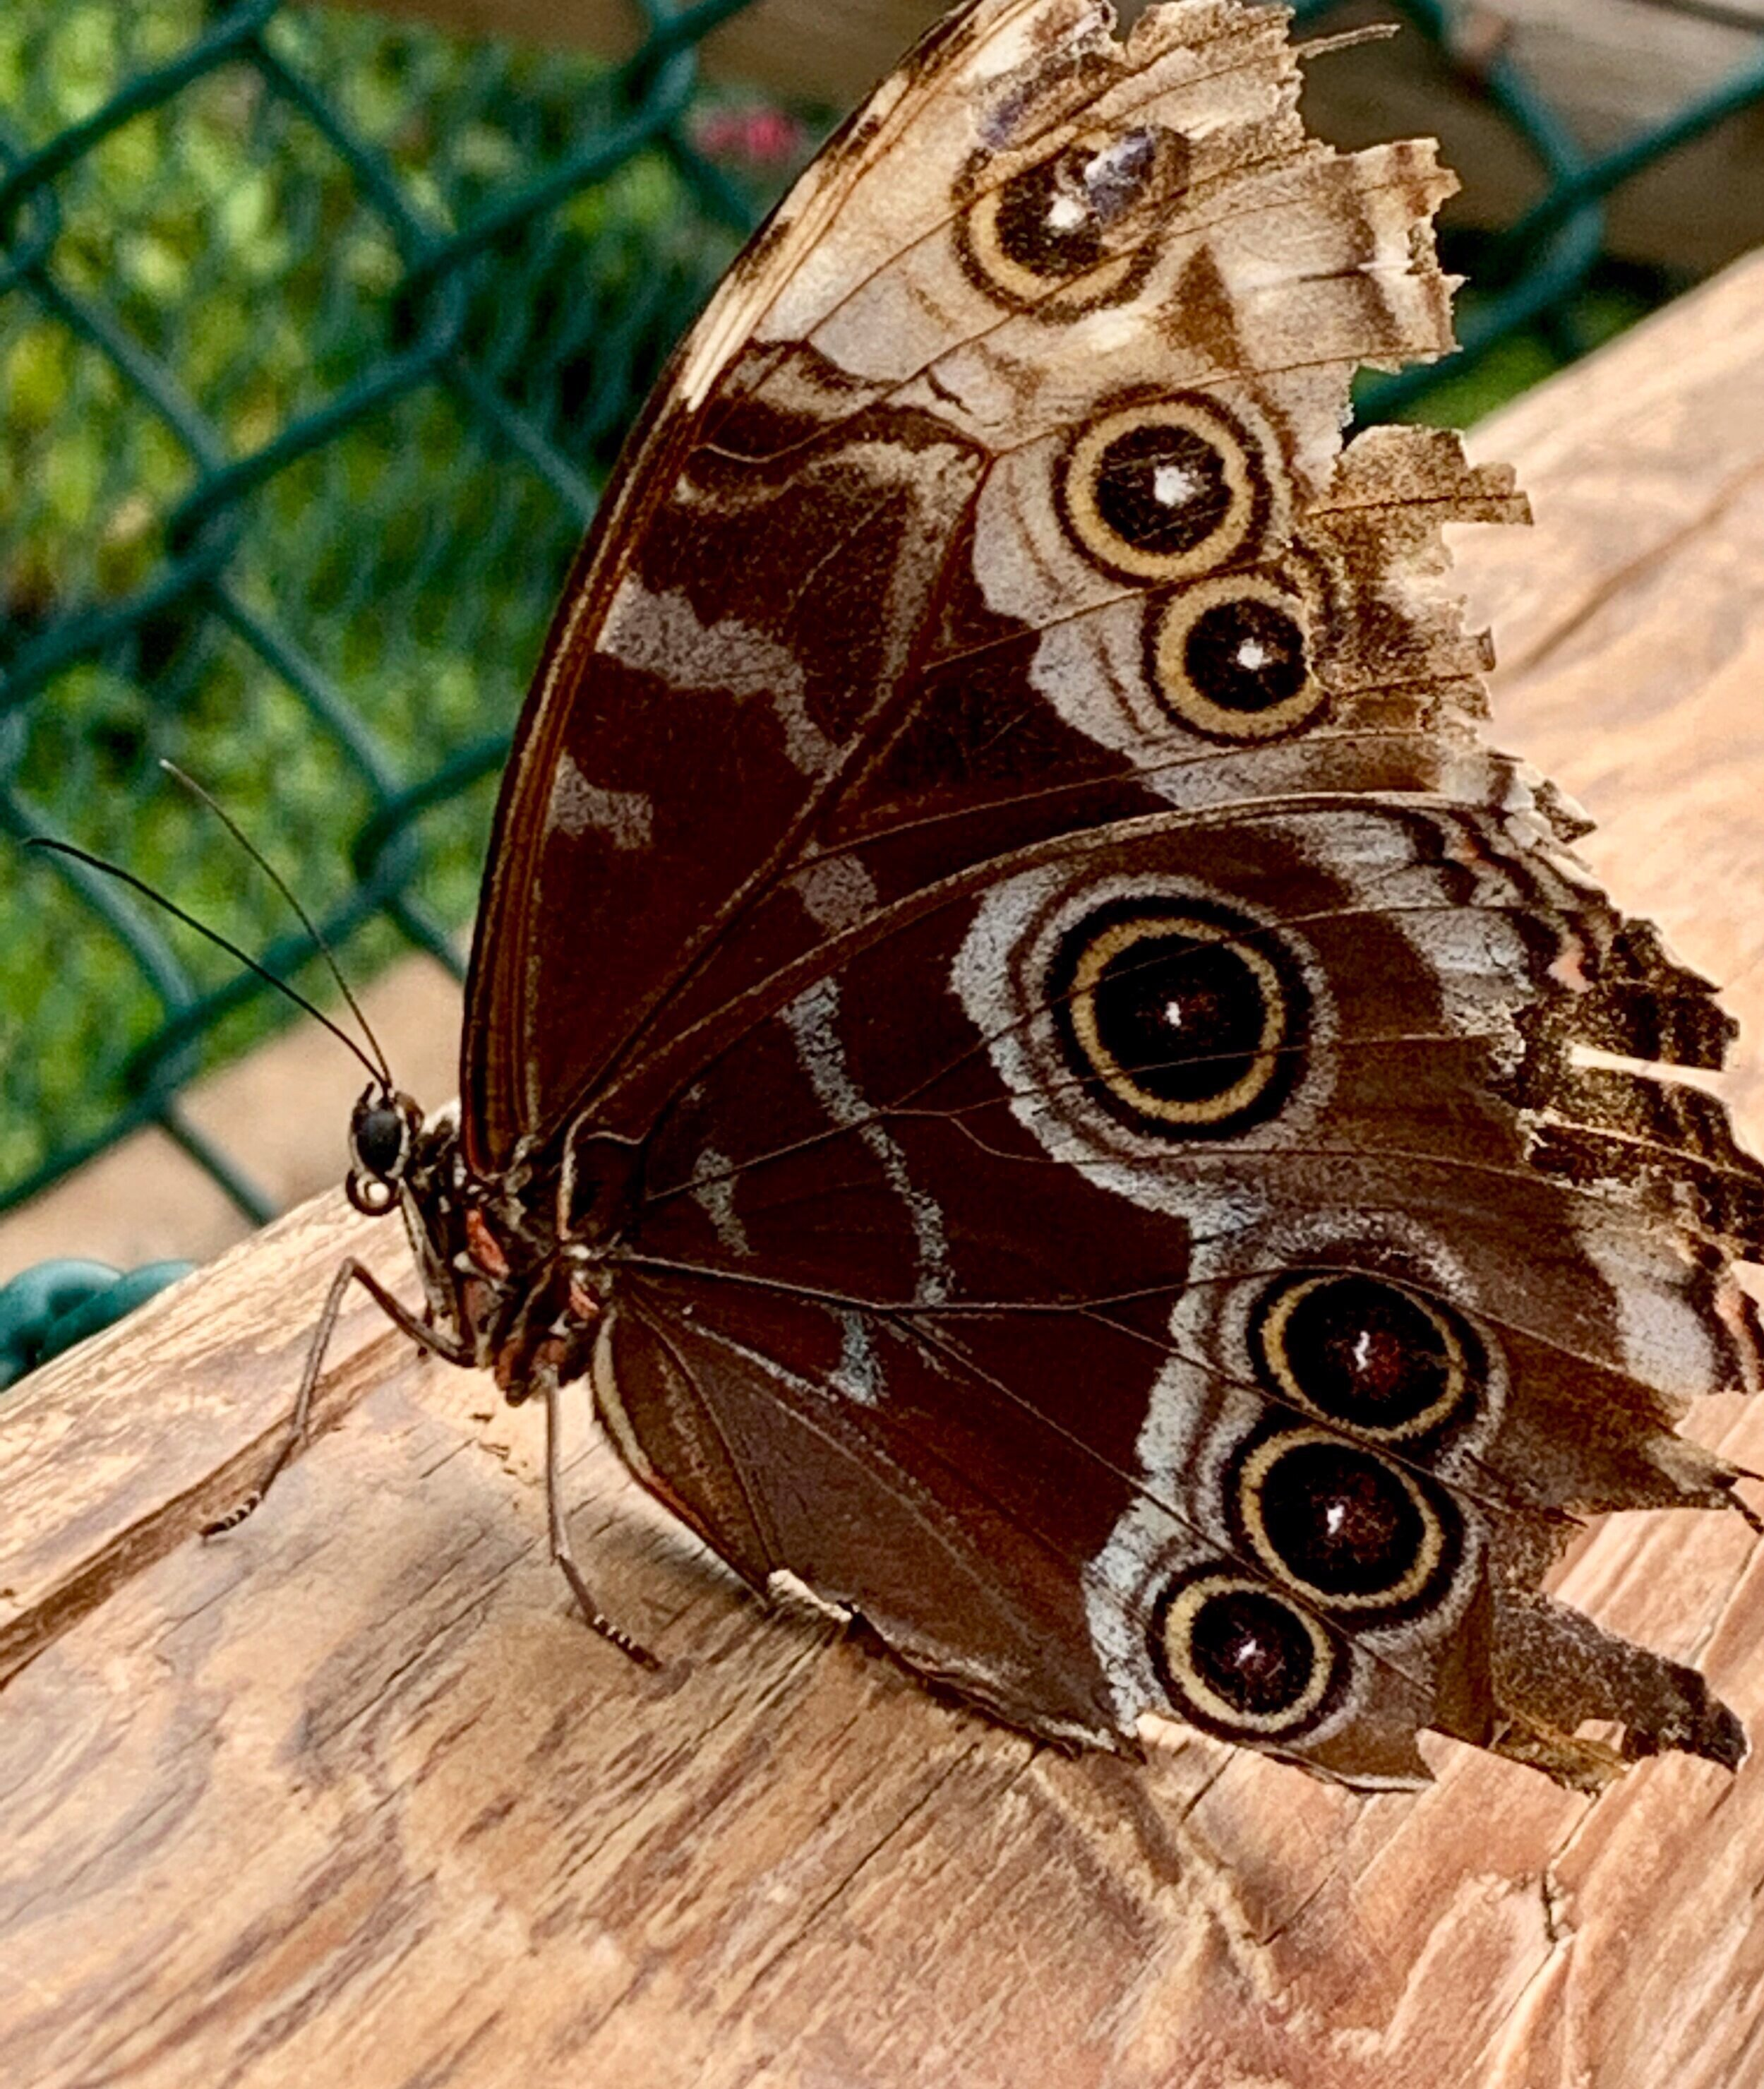 The fabulous Morpho, wings closed